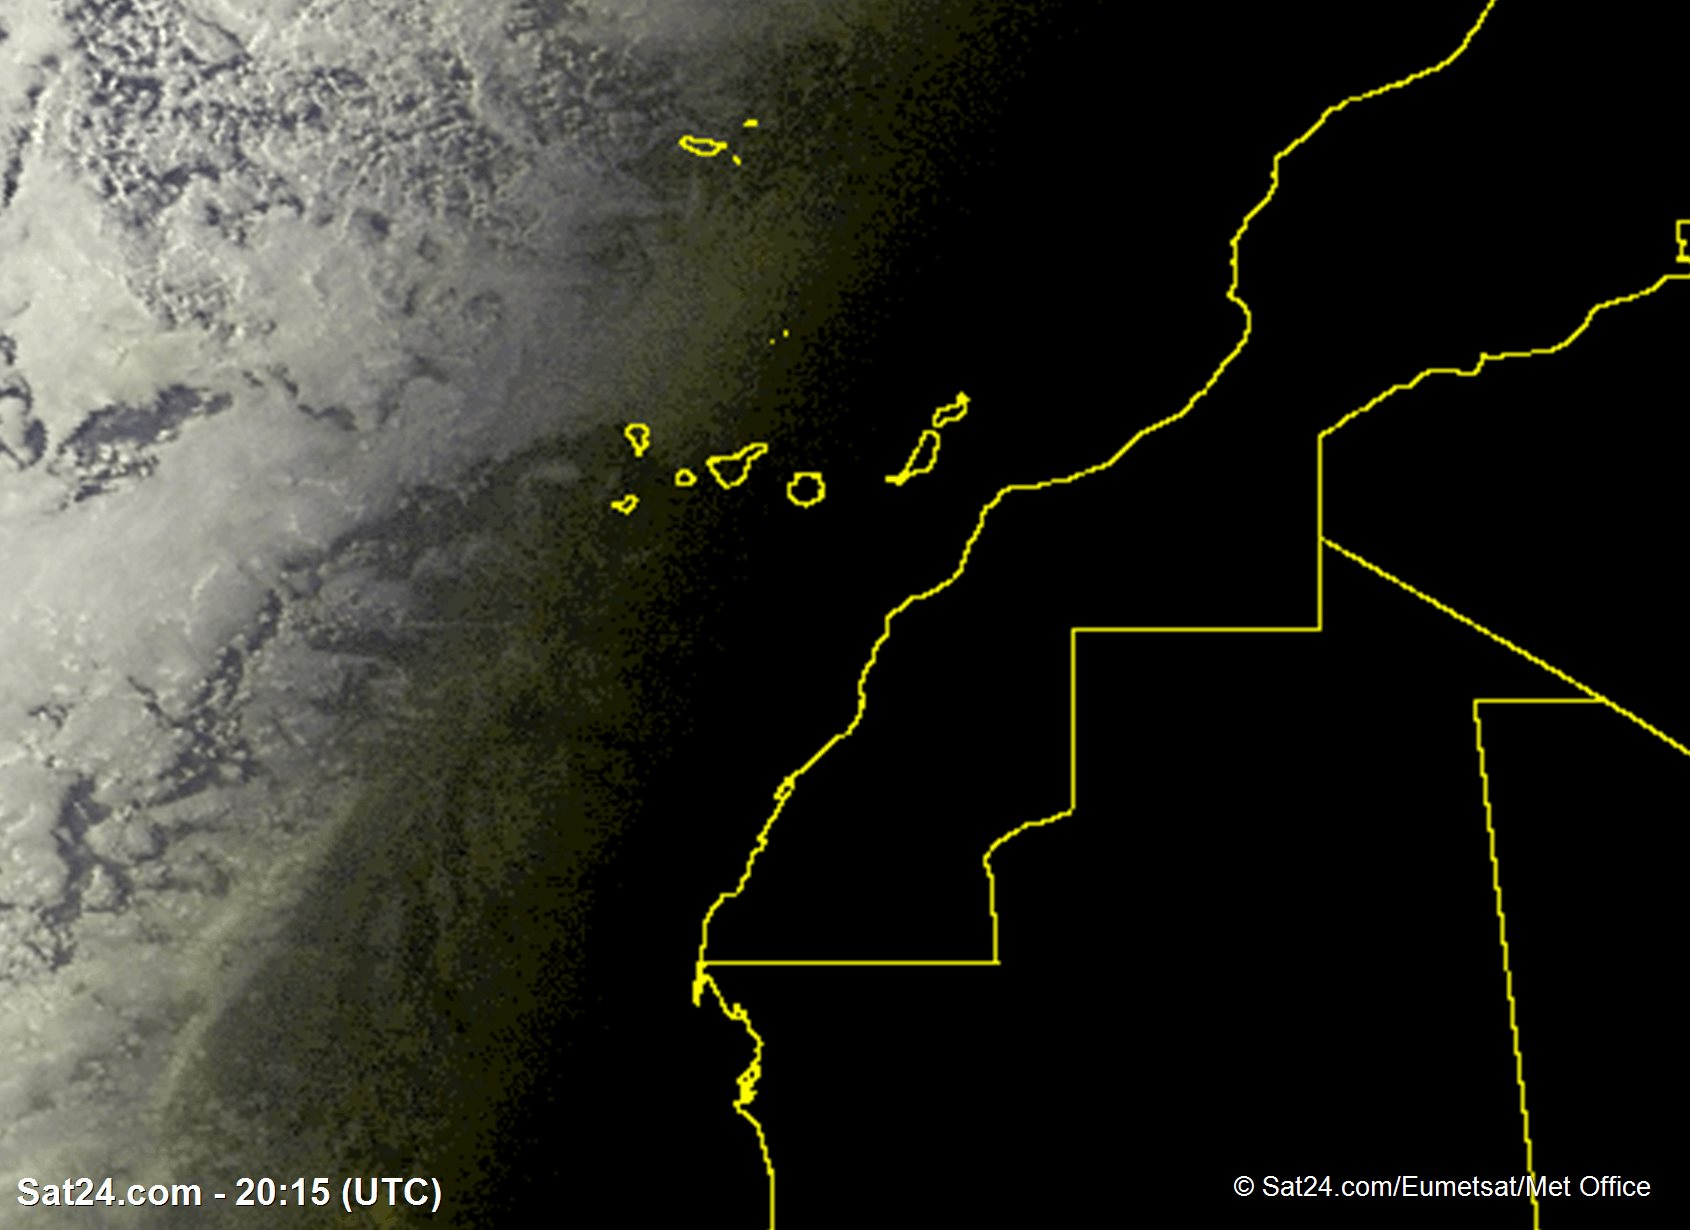 Satelite image of Canary Islands